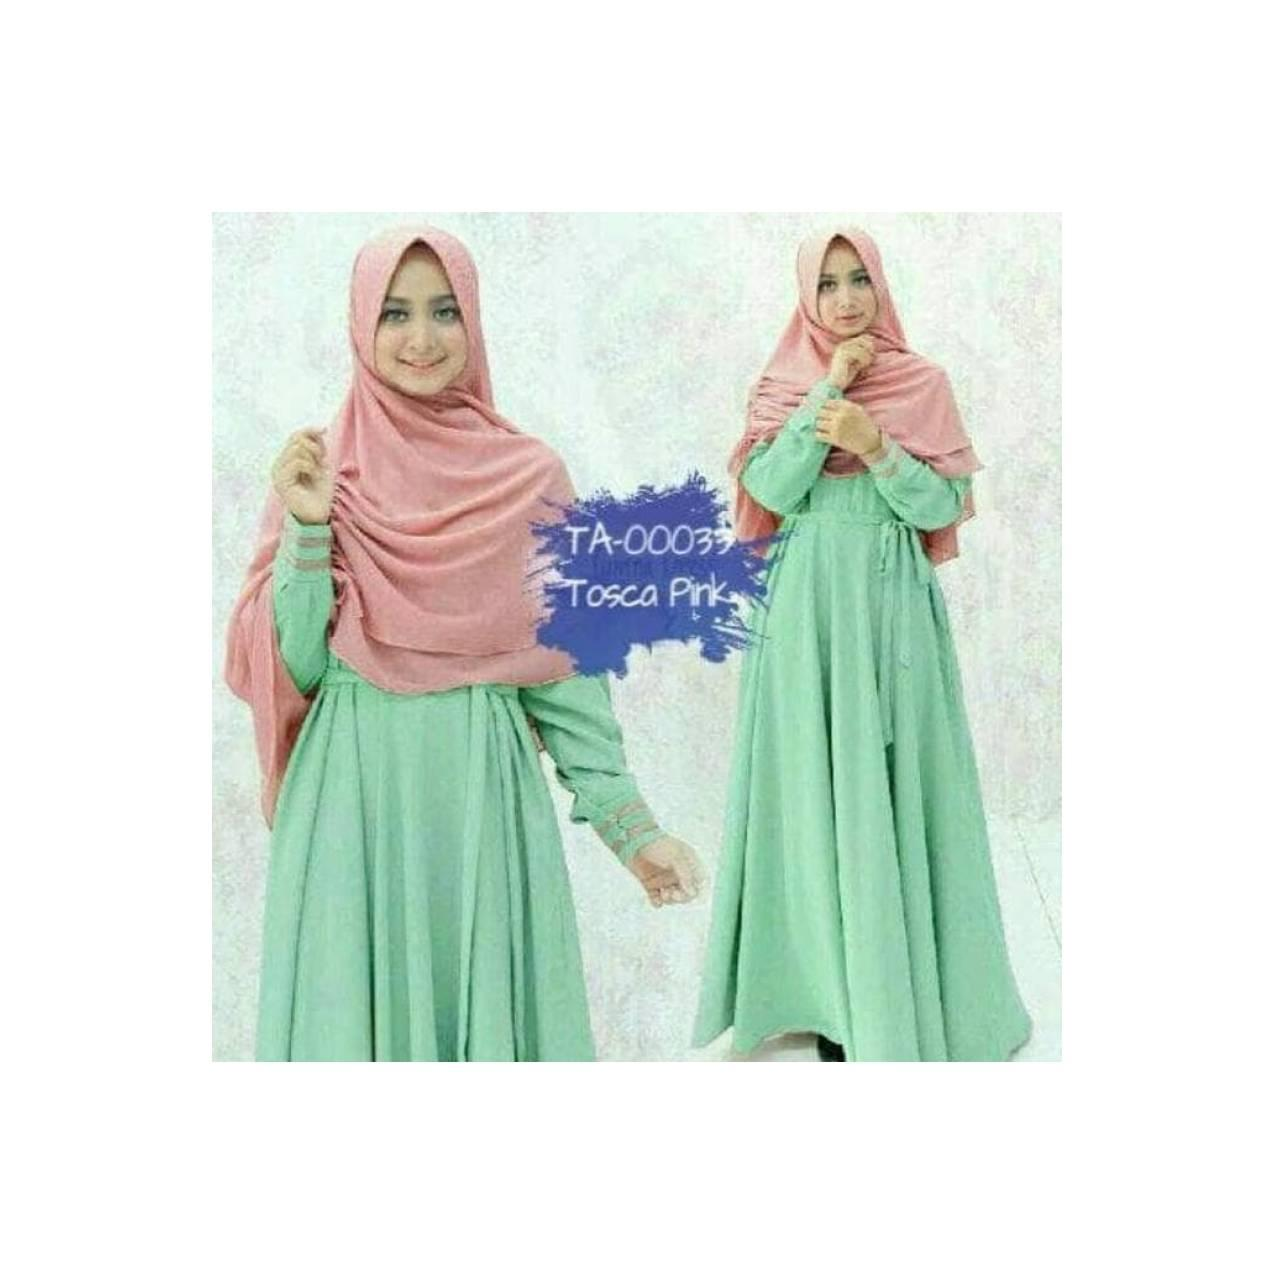 BAJU MUSLIM PESTA GAMIS YUNMINA ANEKA WARNA 3 DRESS MAXI HIJAB TRENDY